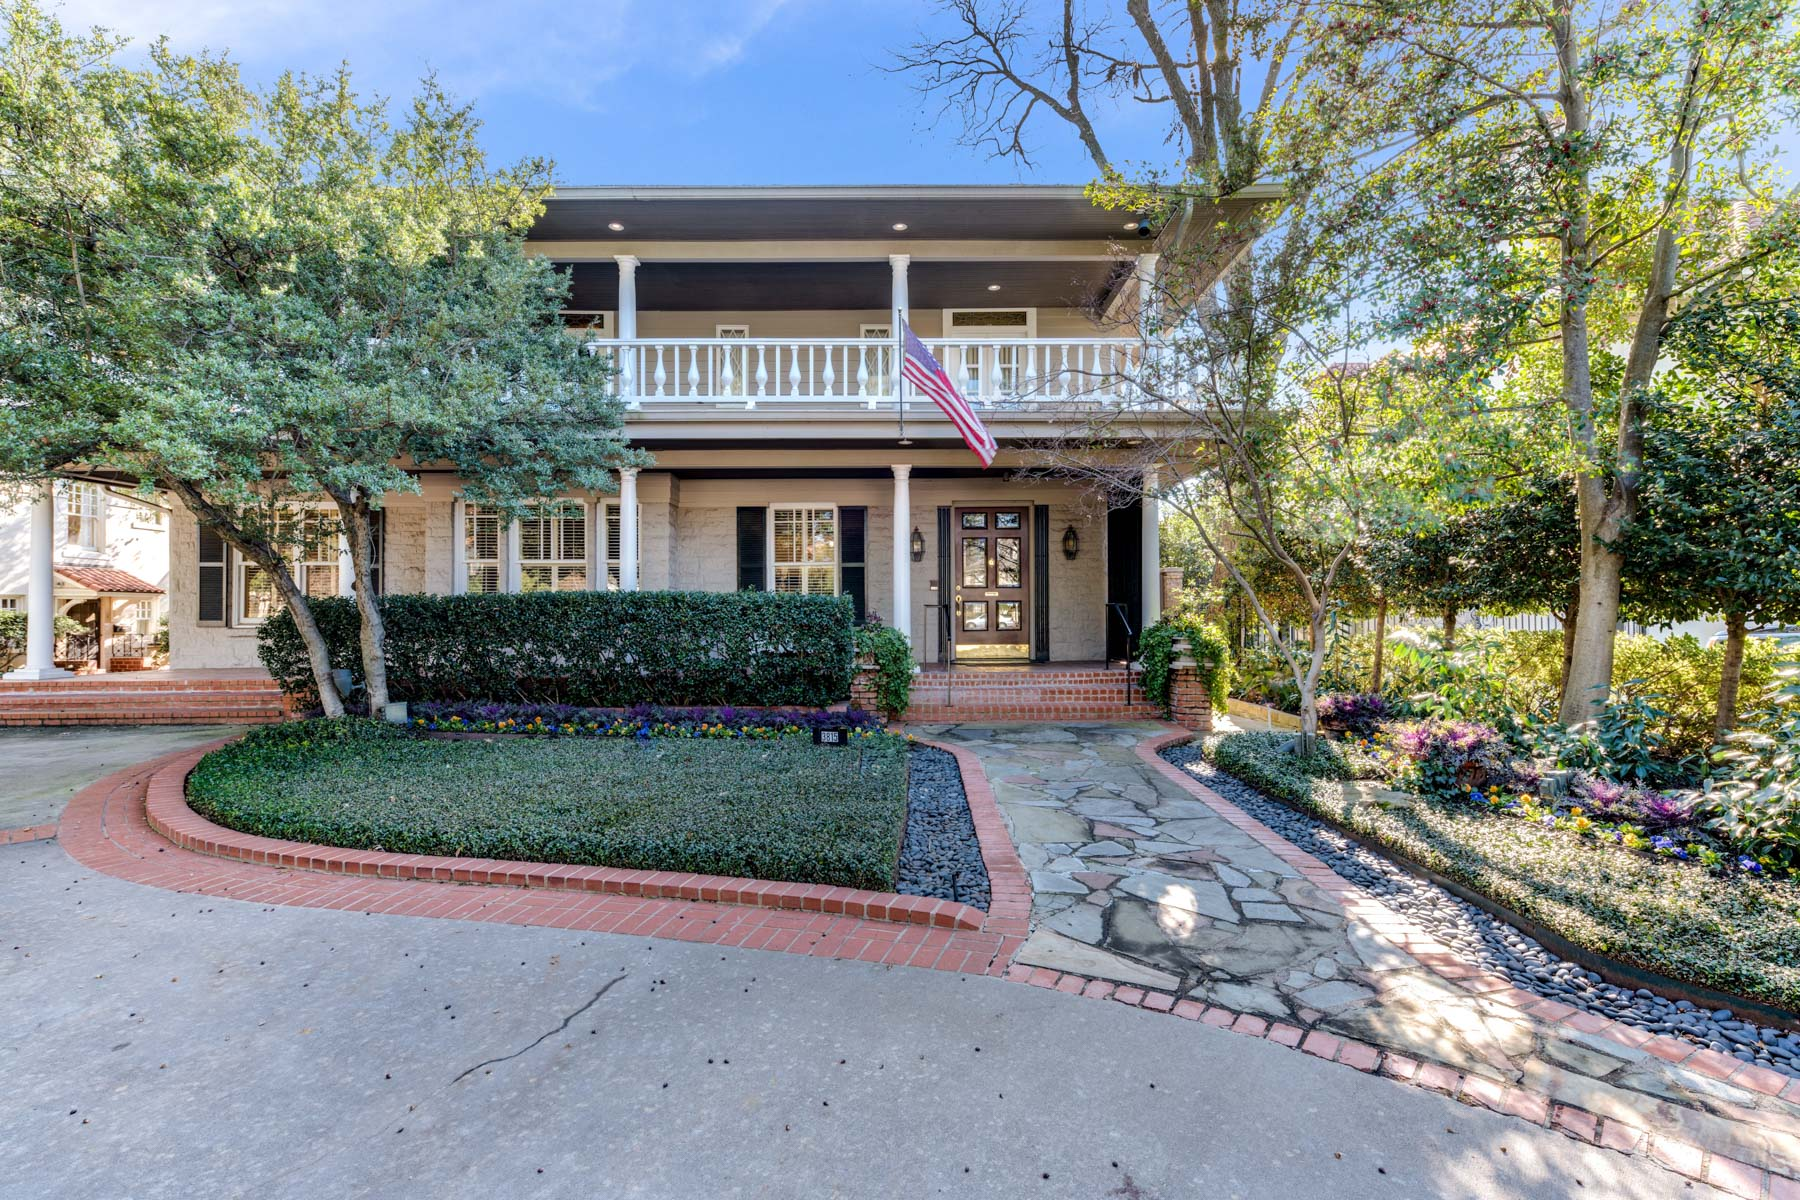 Single Family Home for Sale at Stately Highland Park Home on Coveted Beverly Drive 3815 Beverly Drive Highland Park, Texas 75205 United States